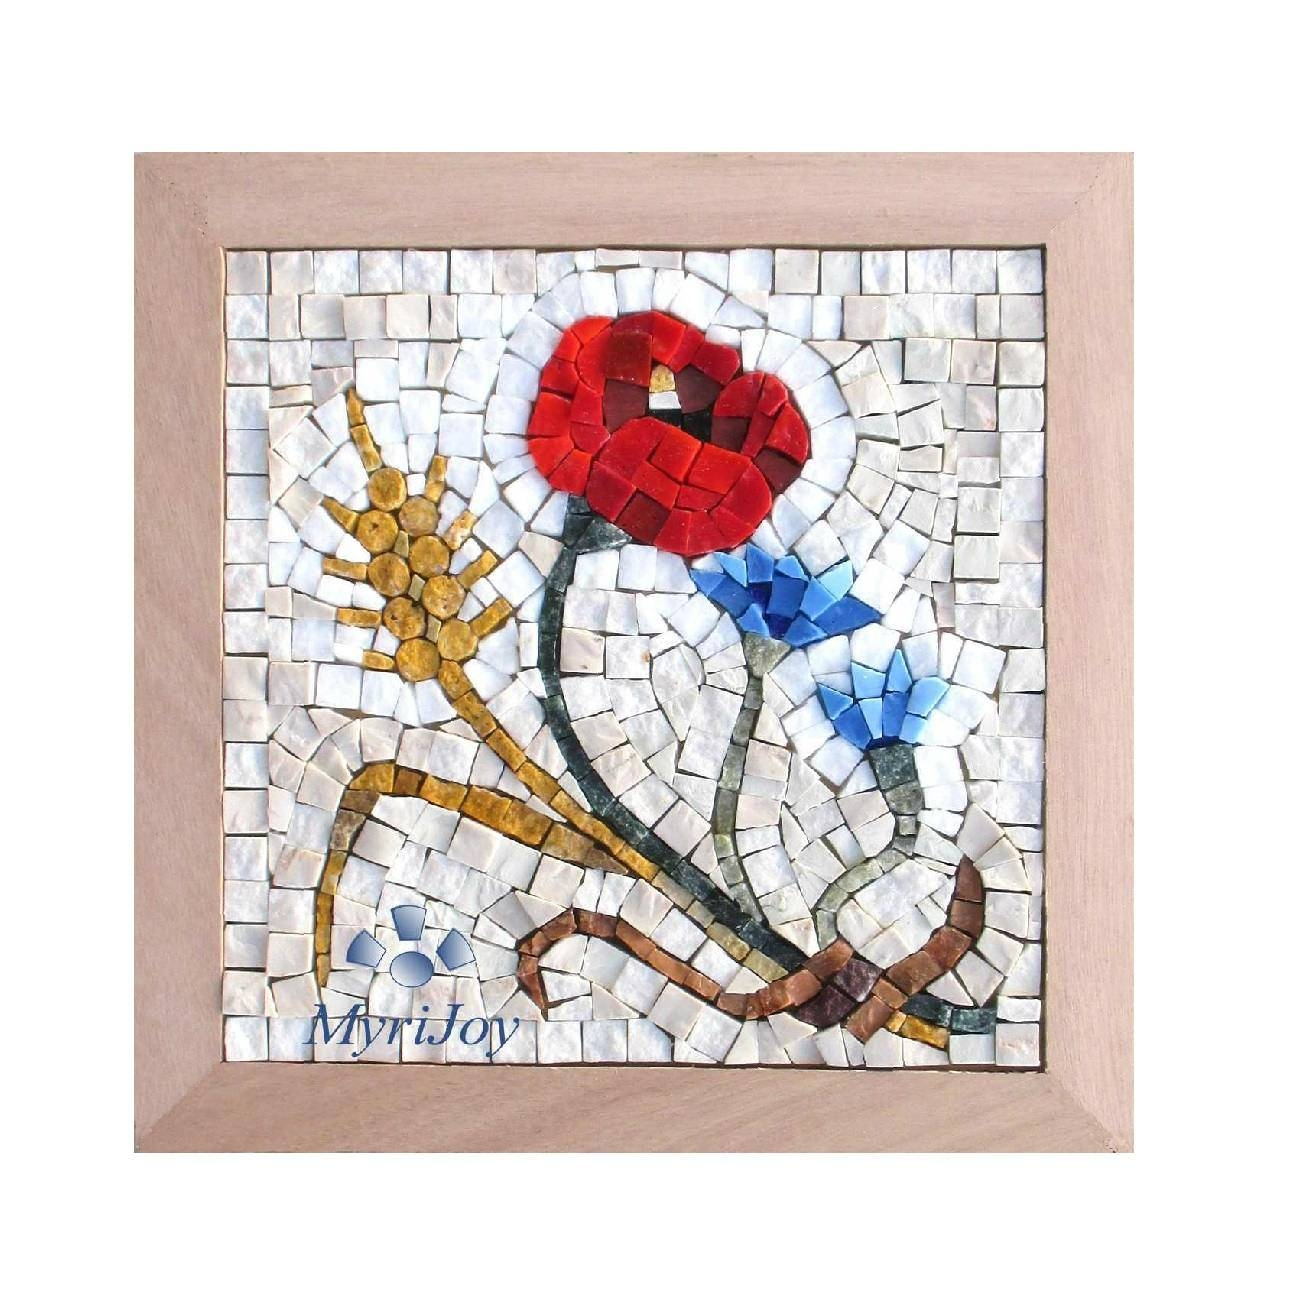 Diy Mosaic Craft Kit For Adults: Four Seasons Summer Mosaic With Recent Mosaic Art Kits For Adults (View 7 of 20)